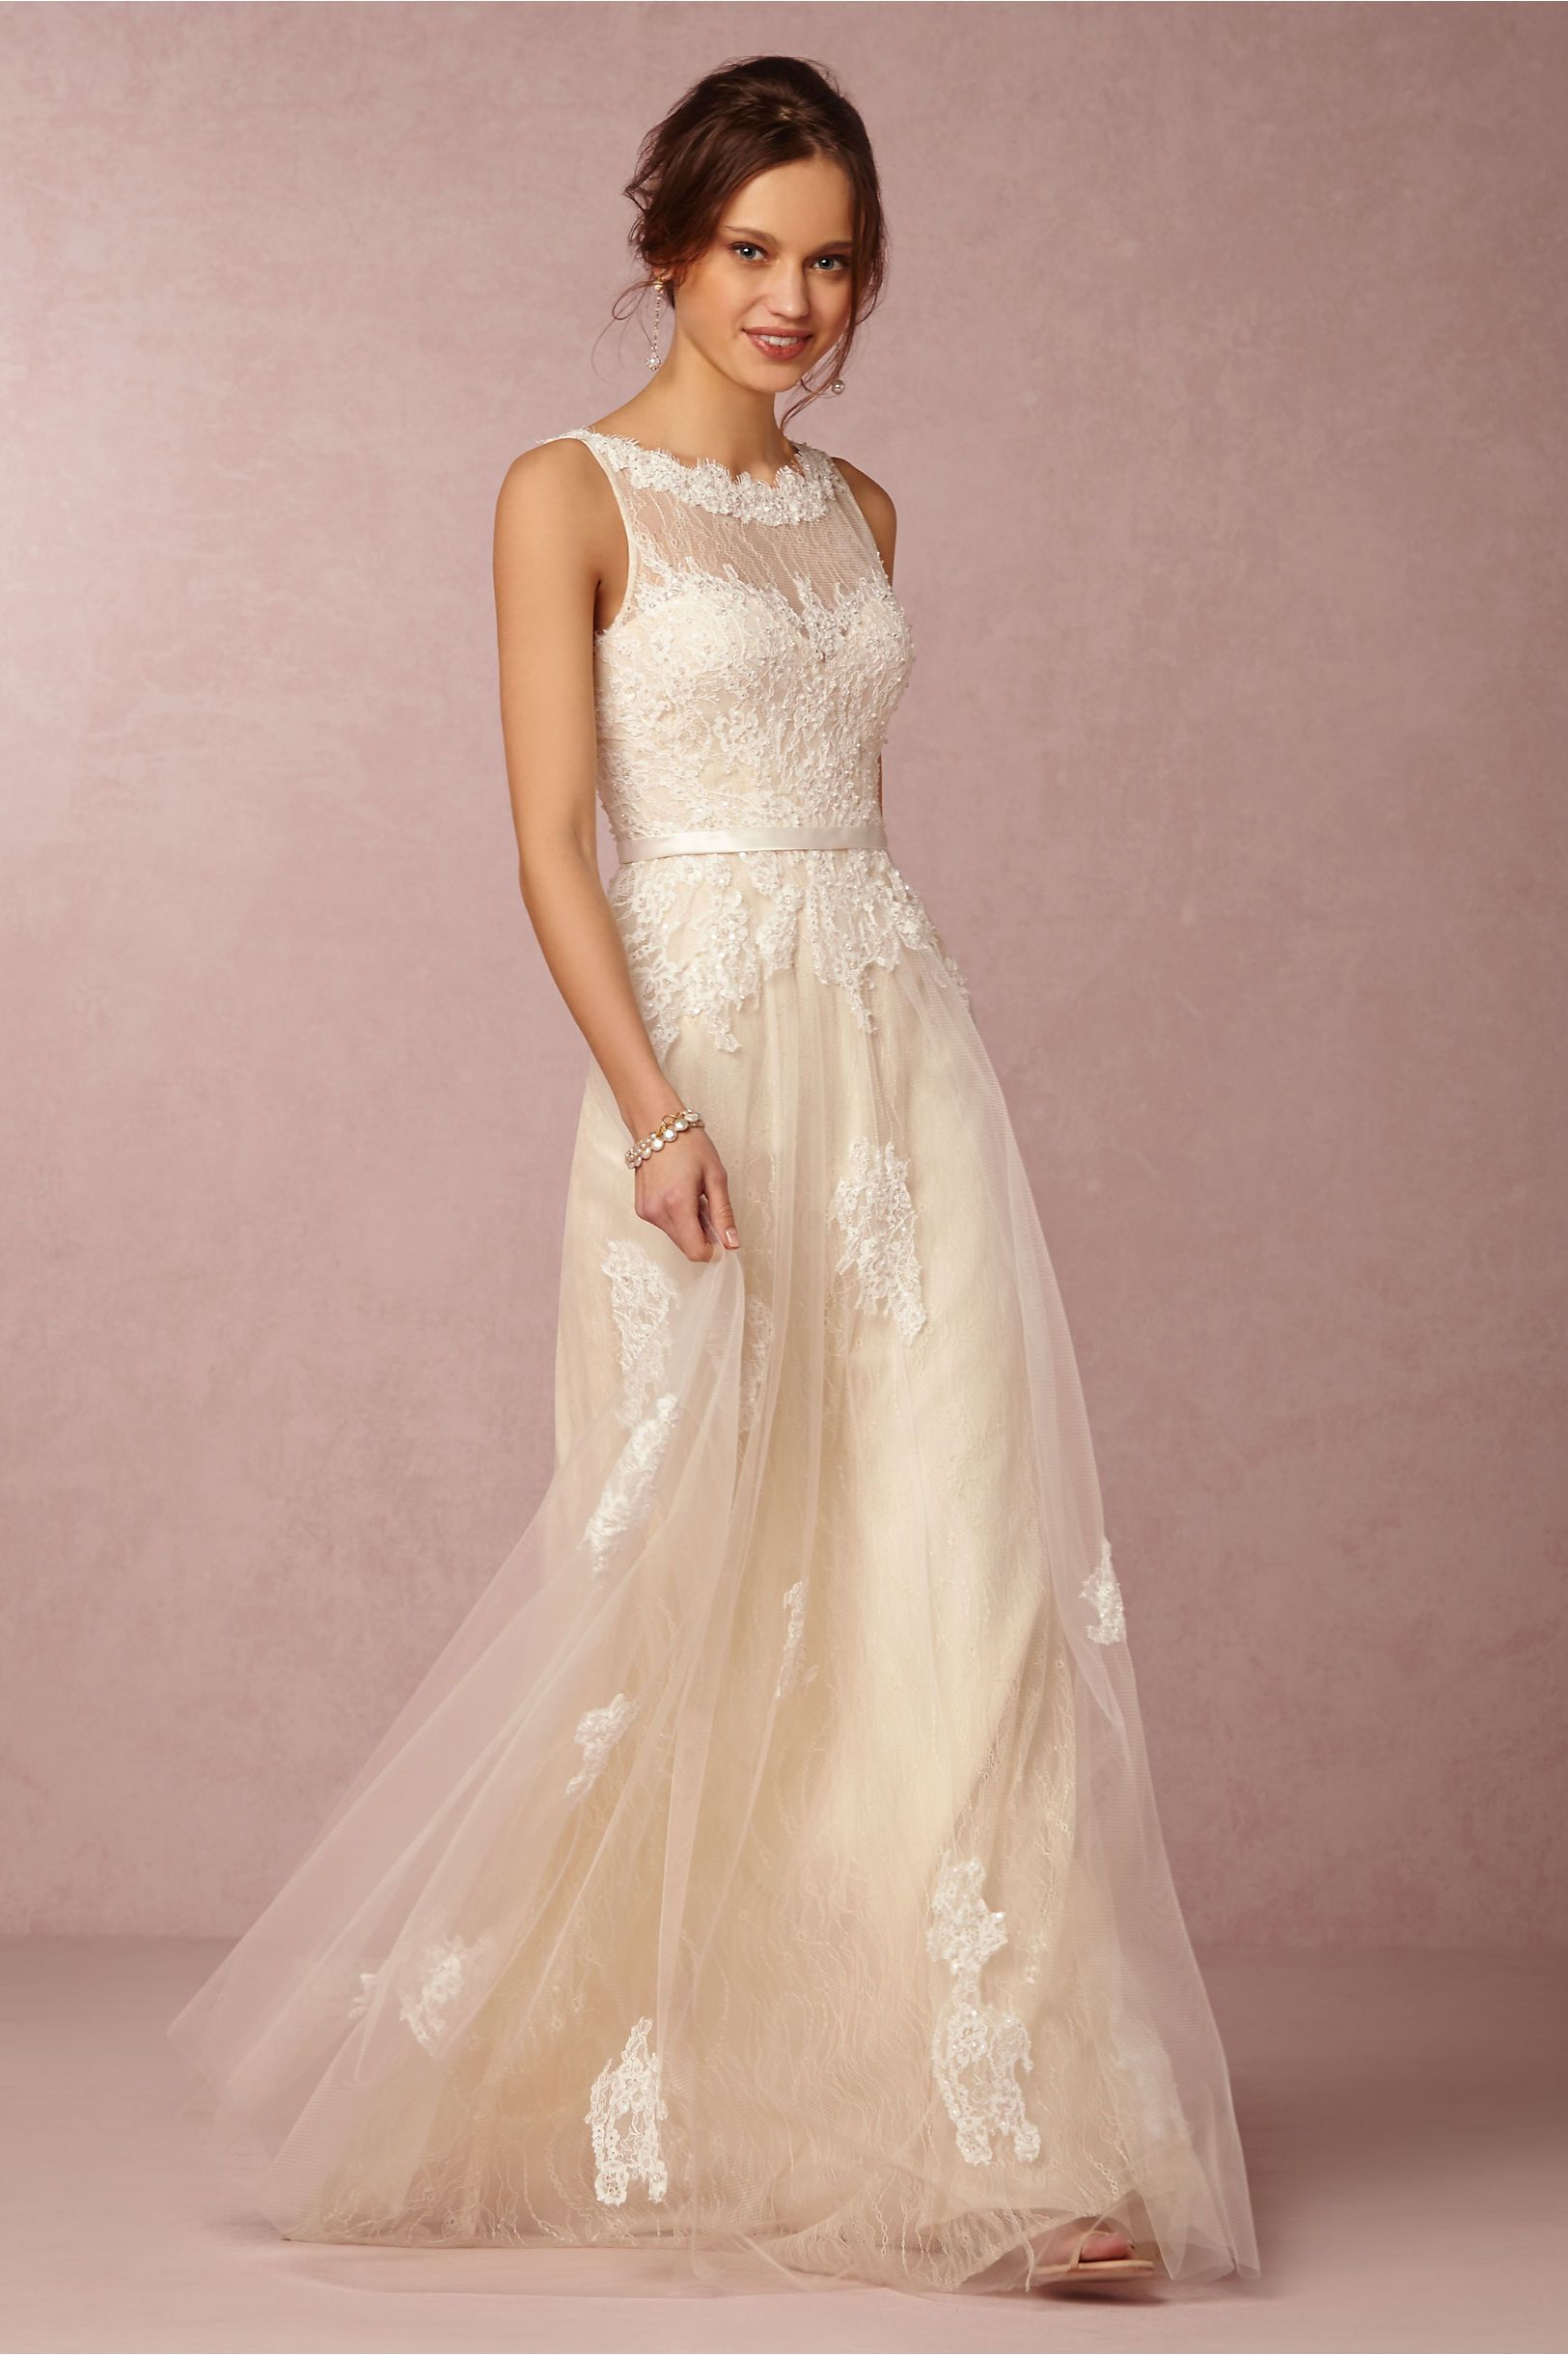 New Wedding Dresses for 2015 from BHLDN | Novios, Vestidos de novia ...